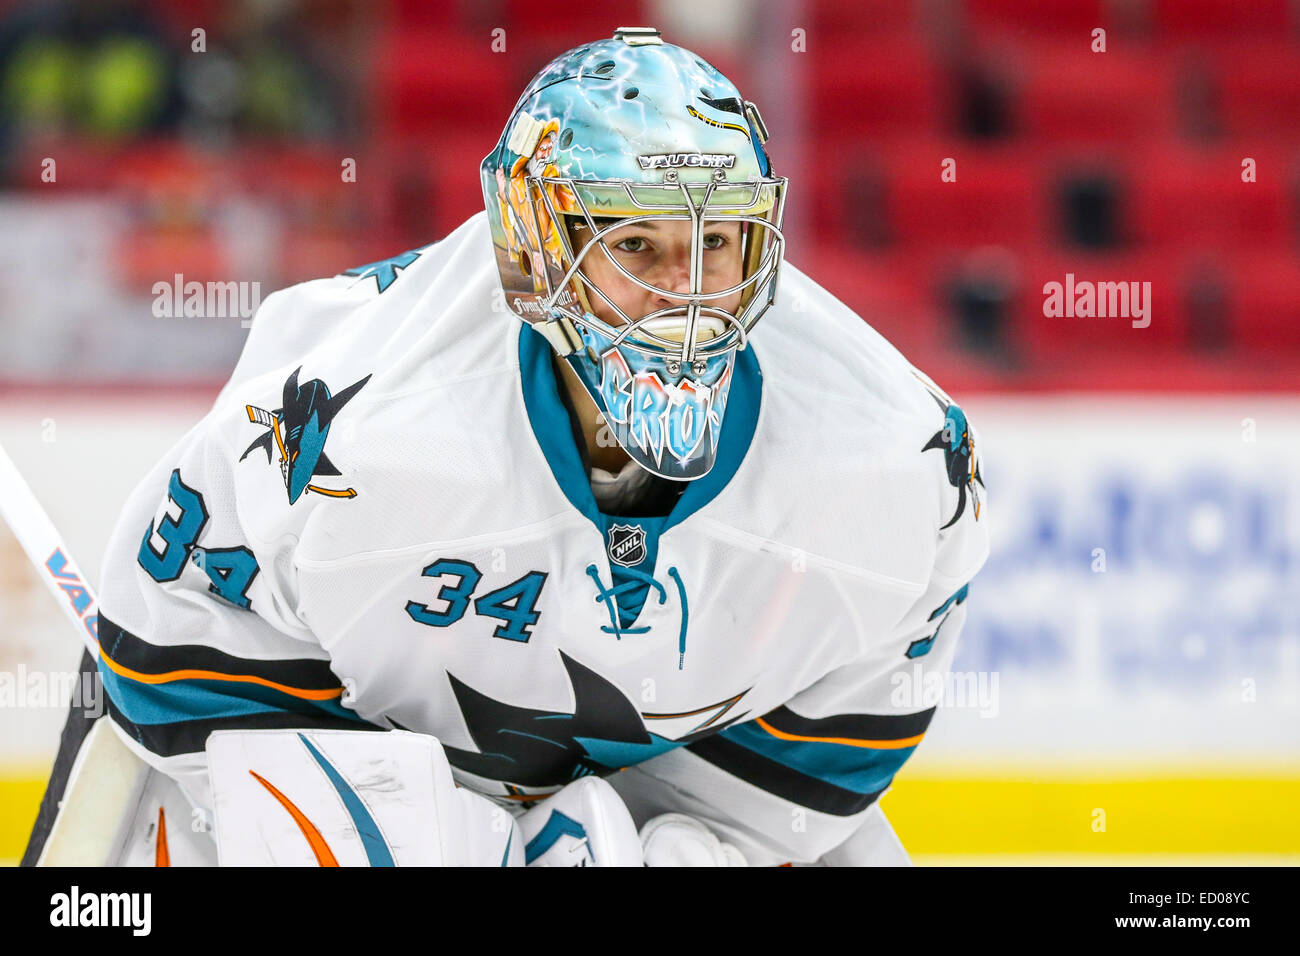 San Jose Sharks Goalie Troy Grosenick 34 During The Nhl Game Stock Photo Alamy